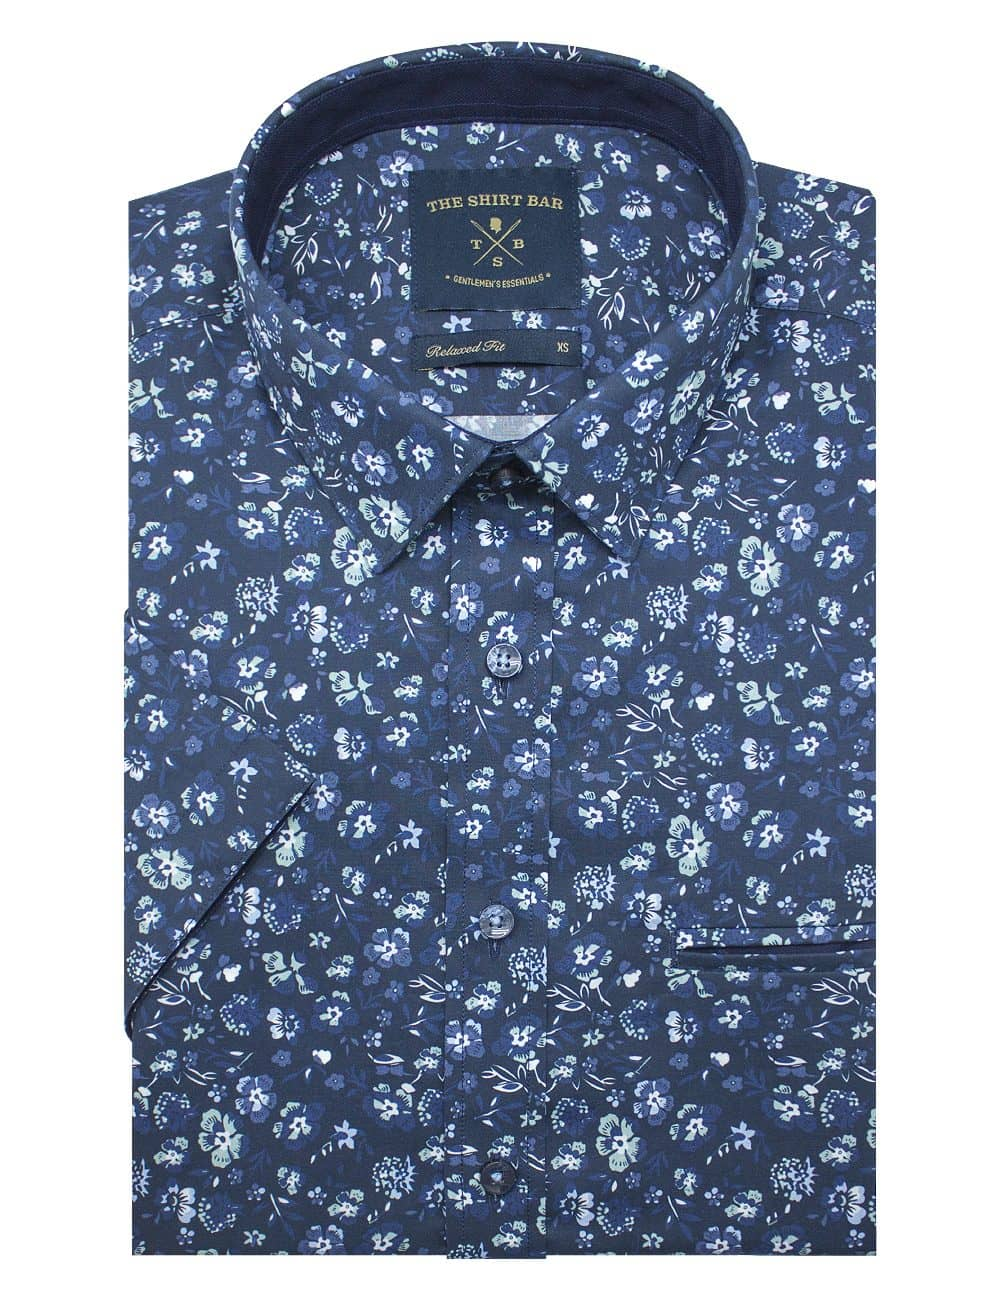 Navy Floral Print Silky Finish Relaxed Fit Short Sleeve Shirt - RF9SNB9.18